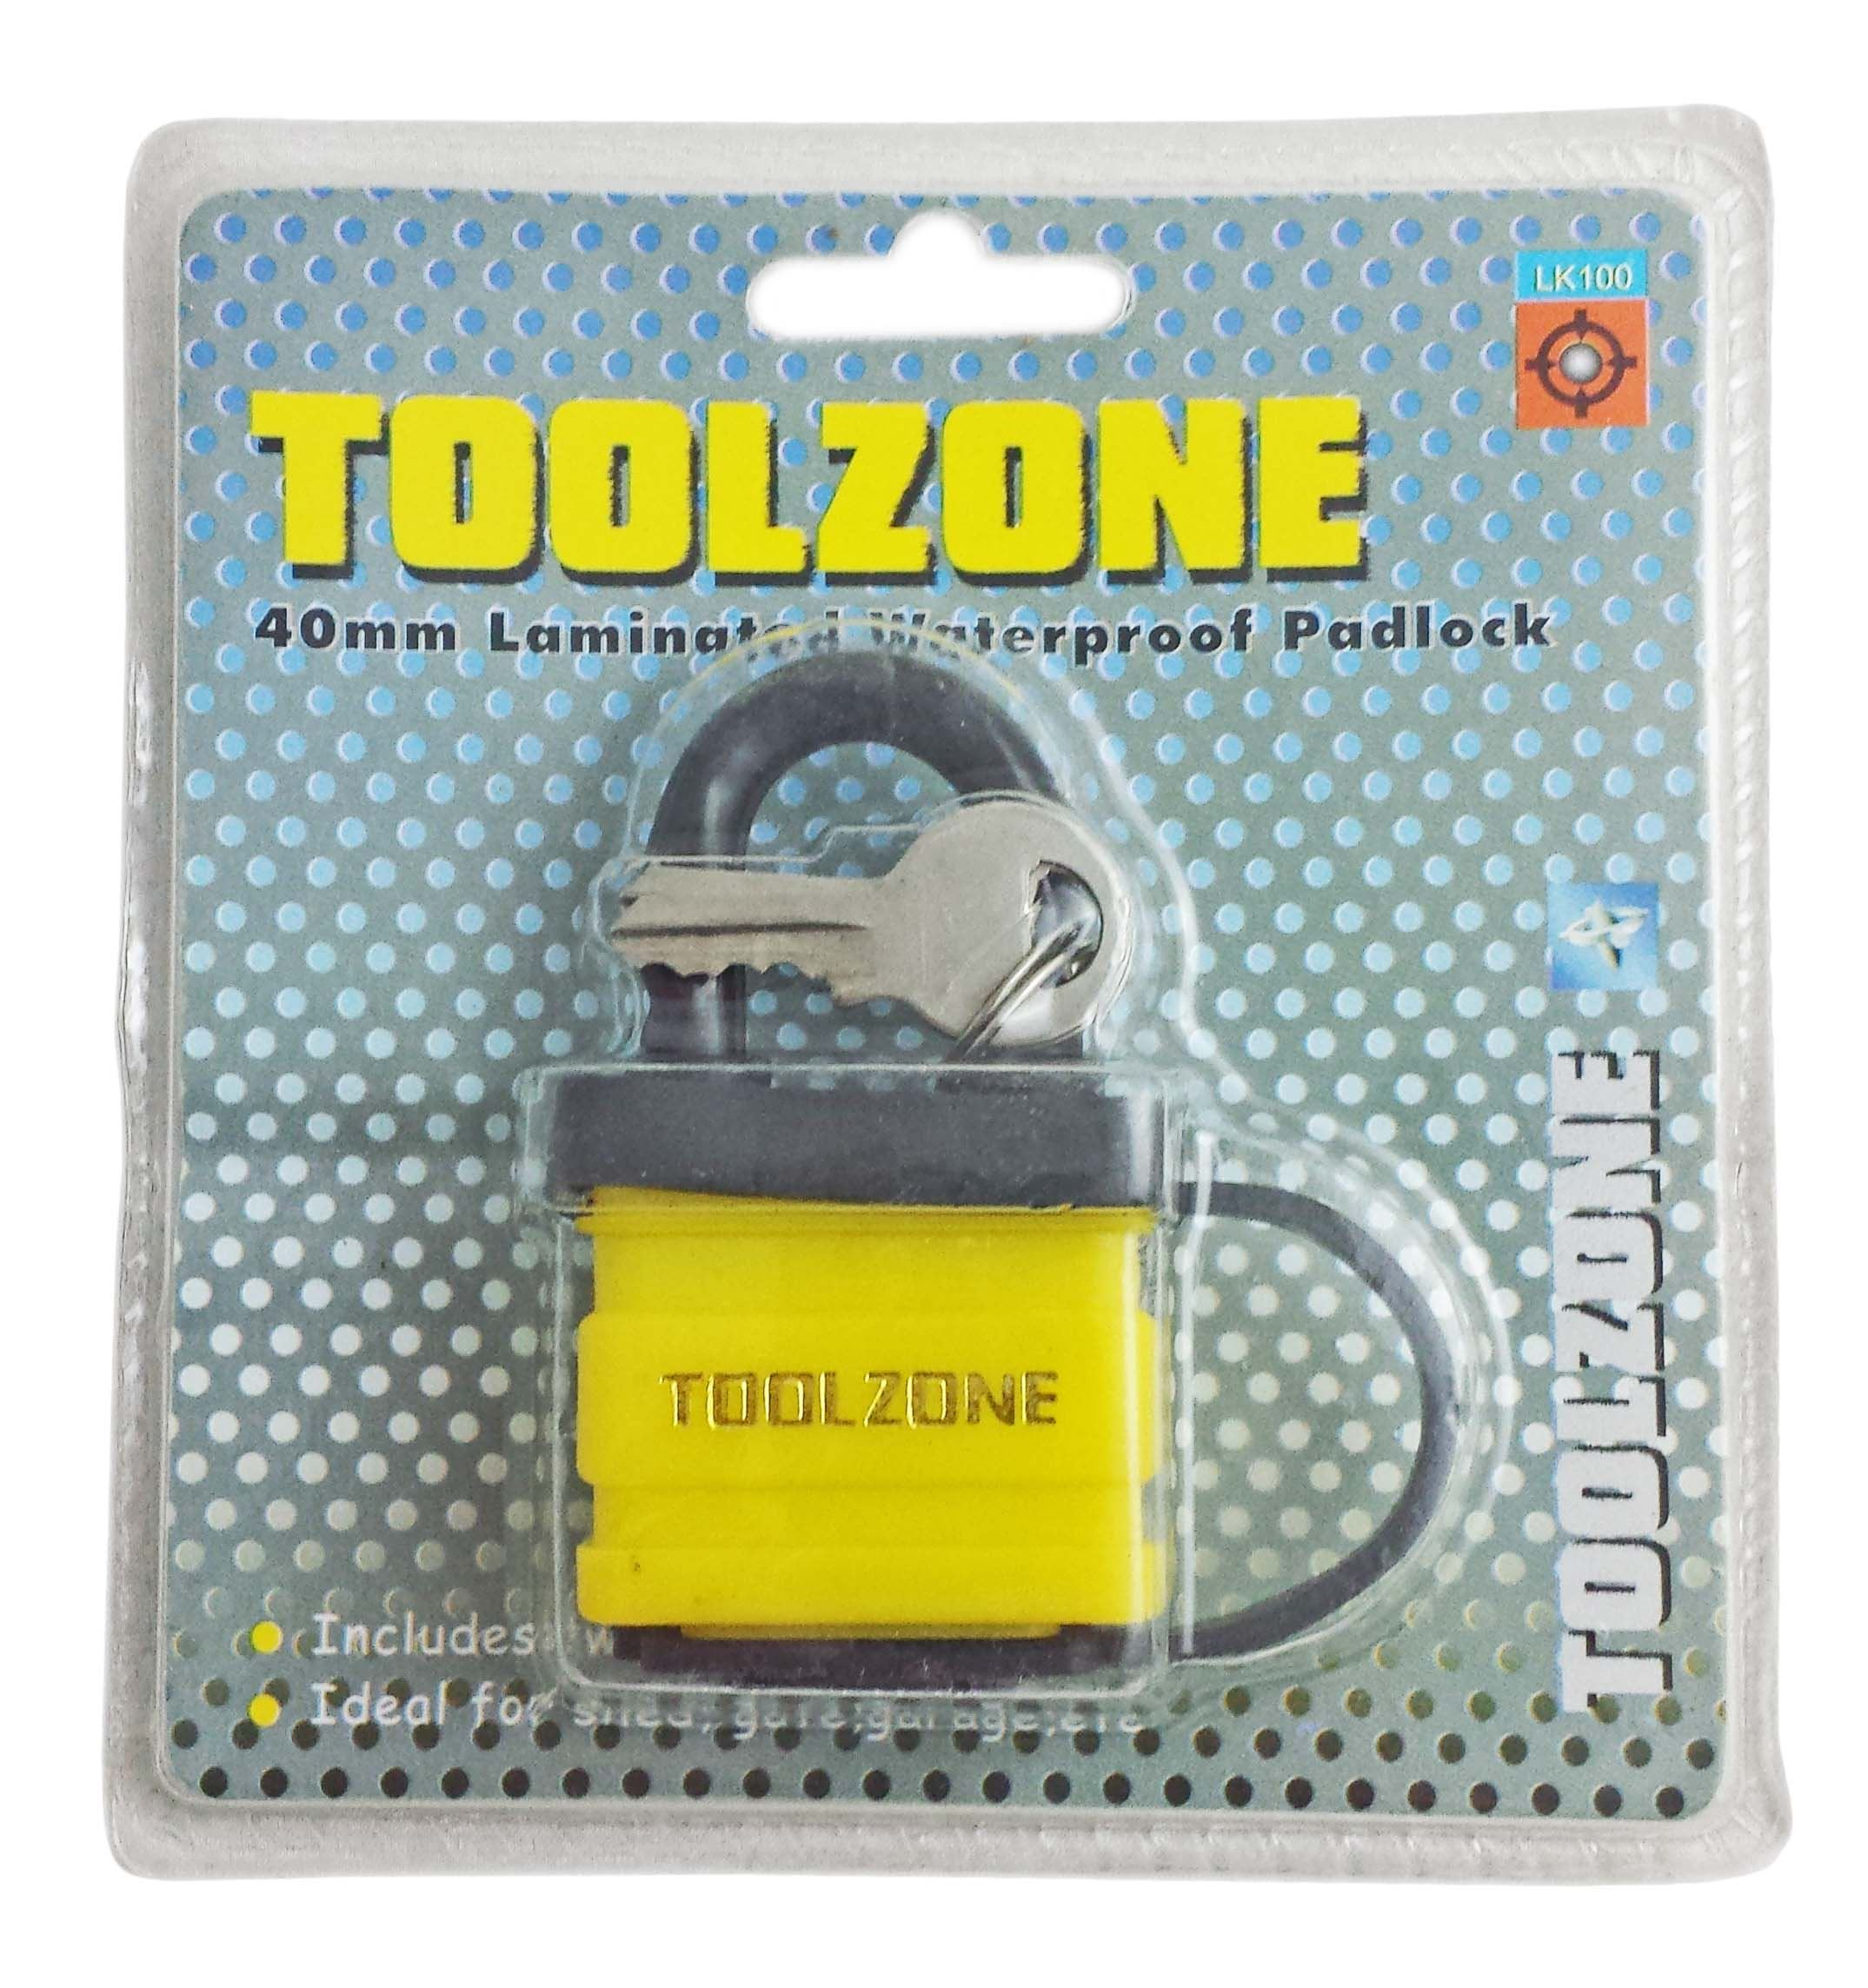 Toolzone 40Mm Laminated Waterproof Padlock